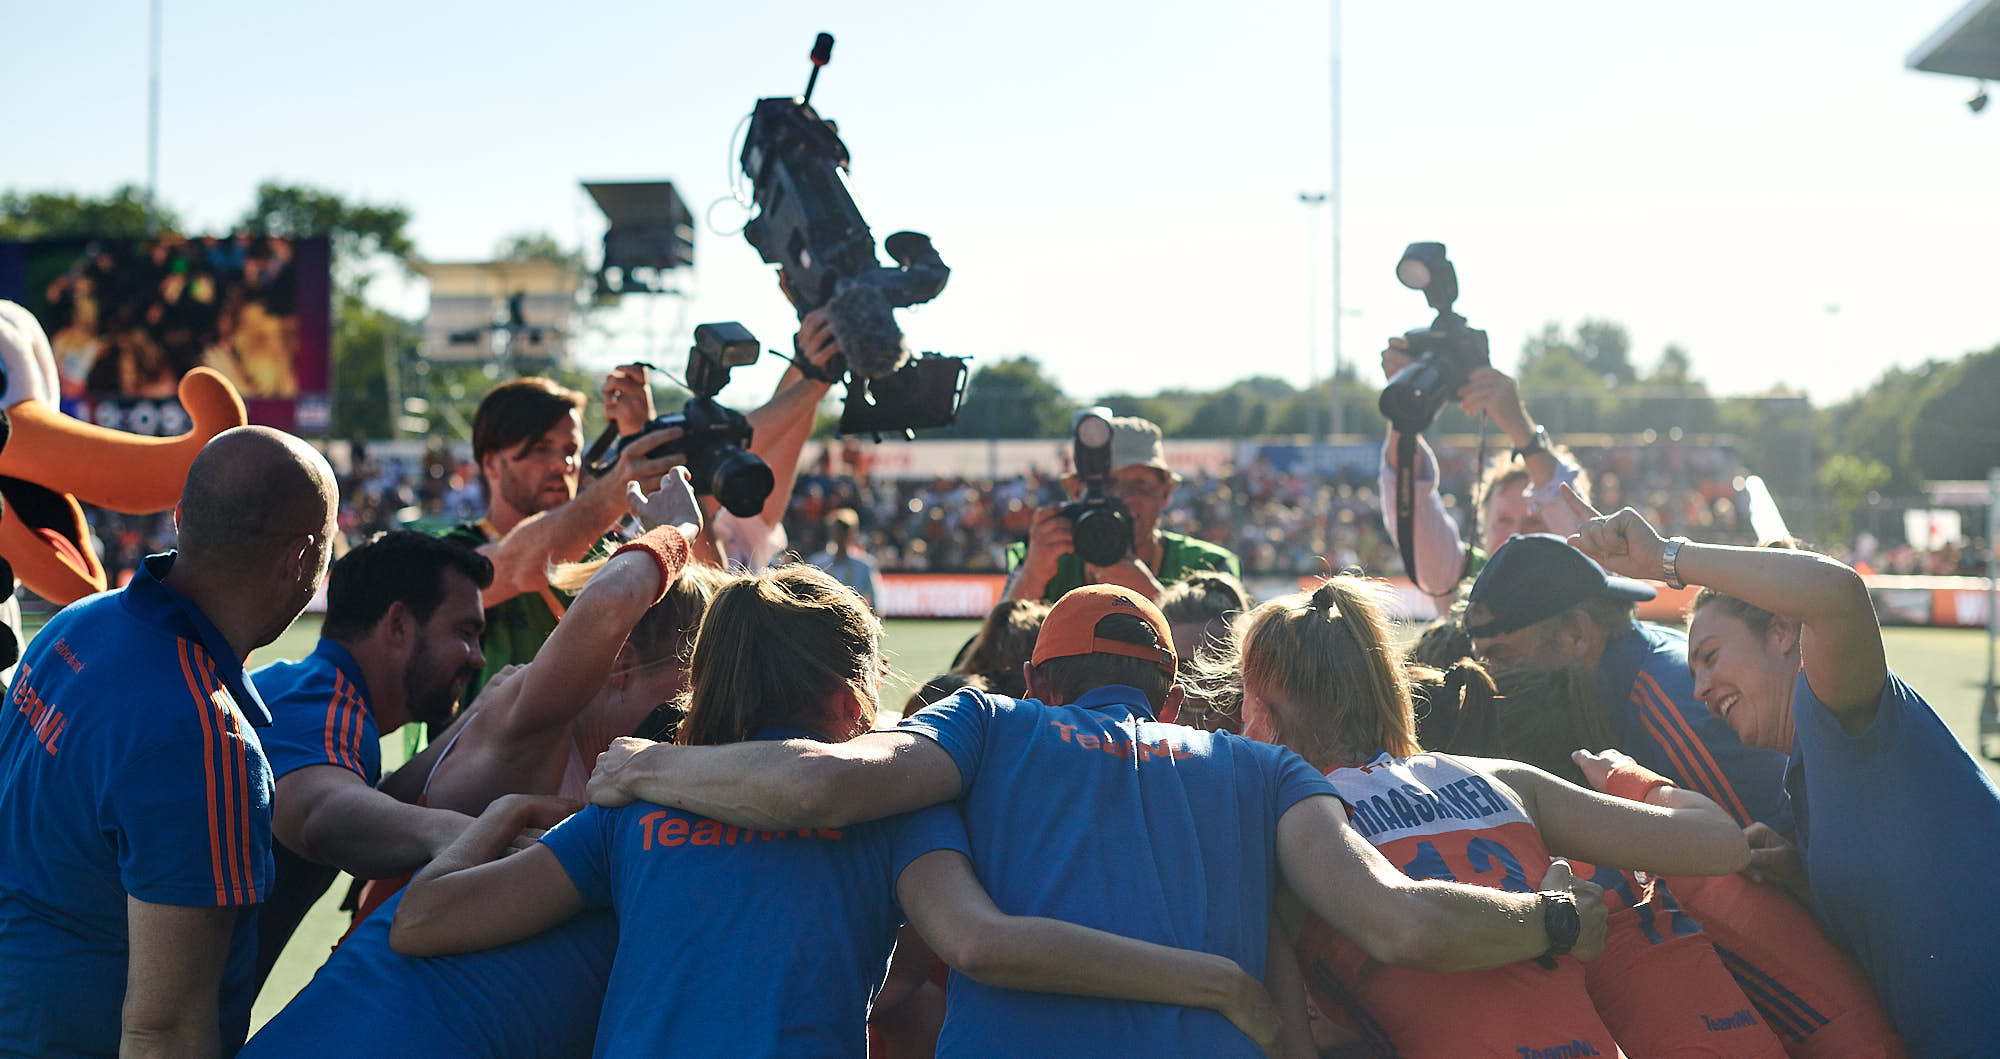 Dutch hockey team players and staff embrace after winning the FIH pro league final in Amsterdam